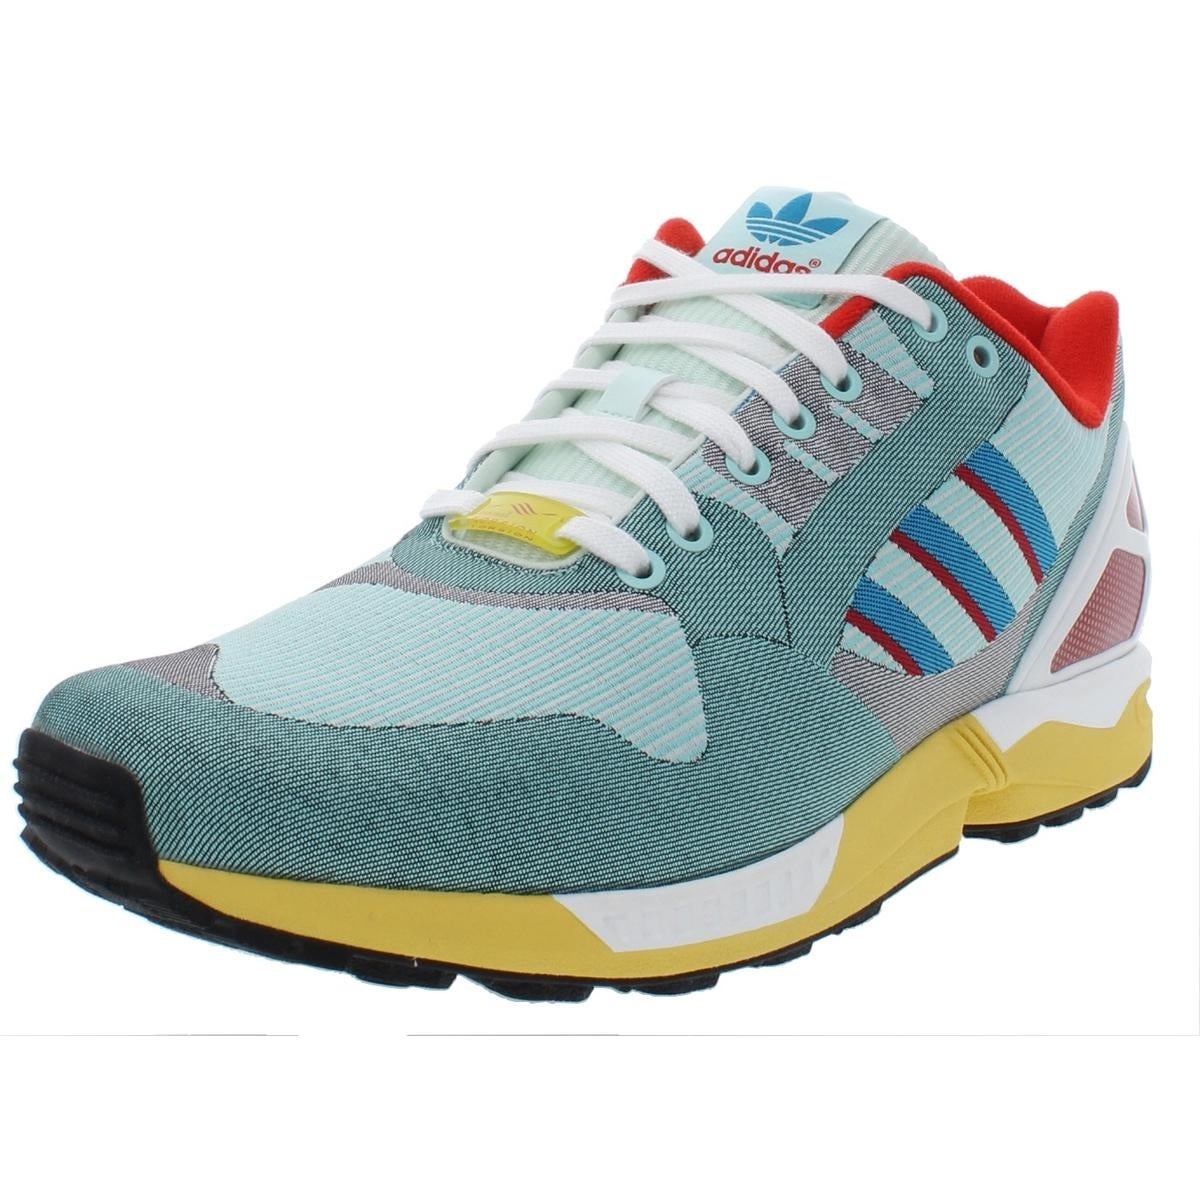 new concept 5fca2 41cfd adidas Originals Mens ZX Flux Weave Fashion Sneakers Woven Lifestyle